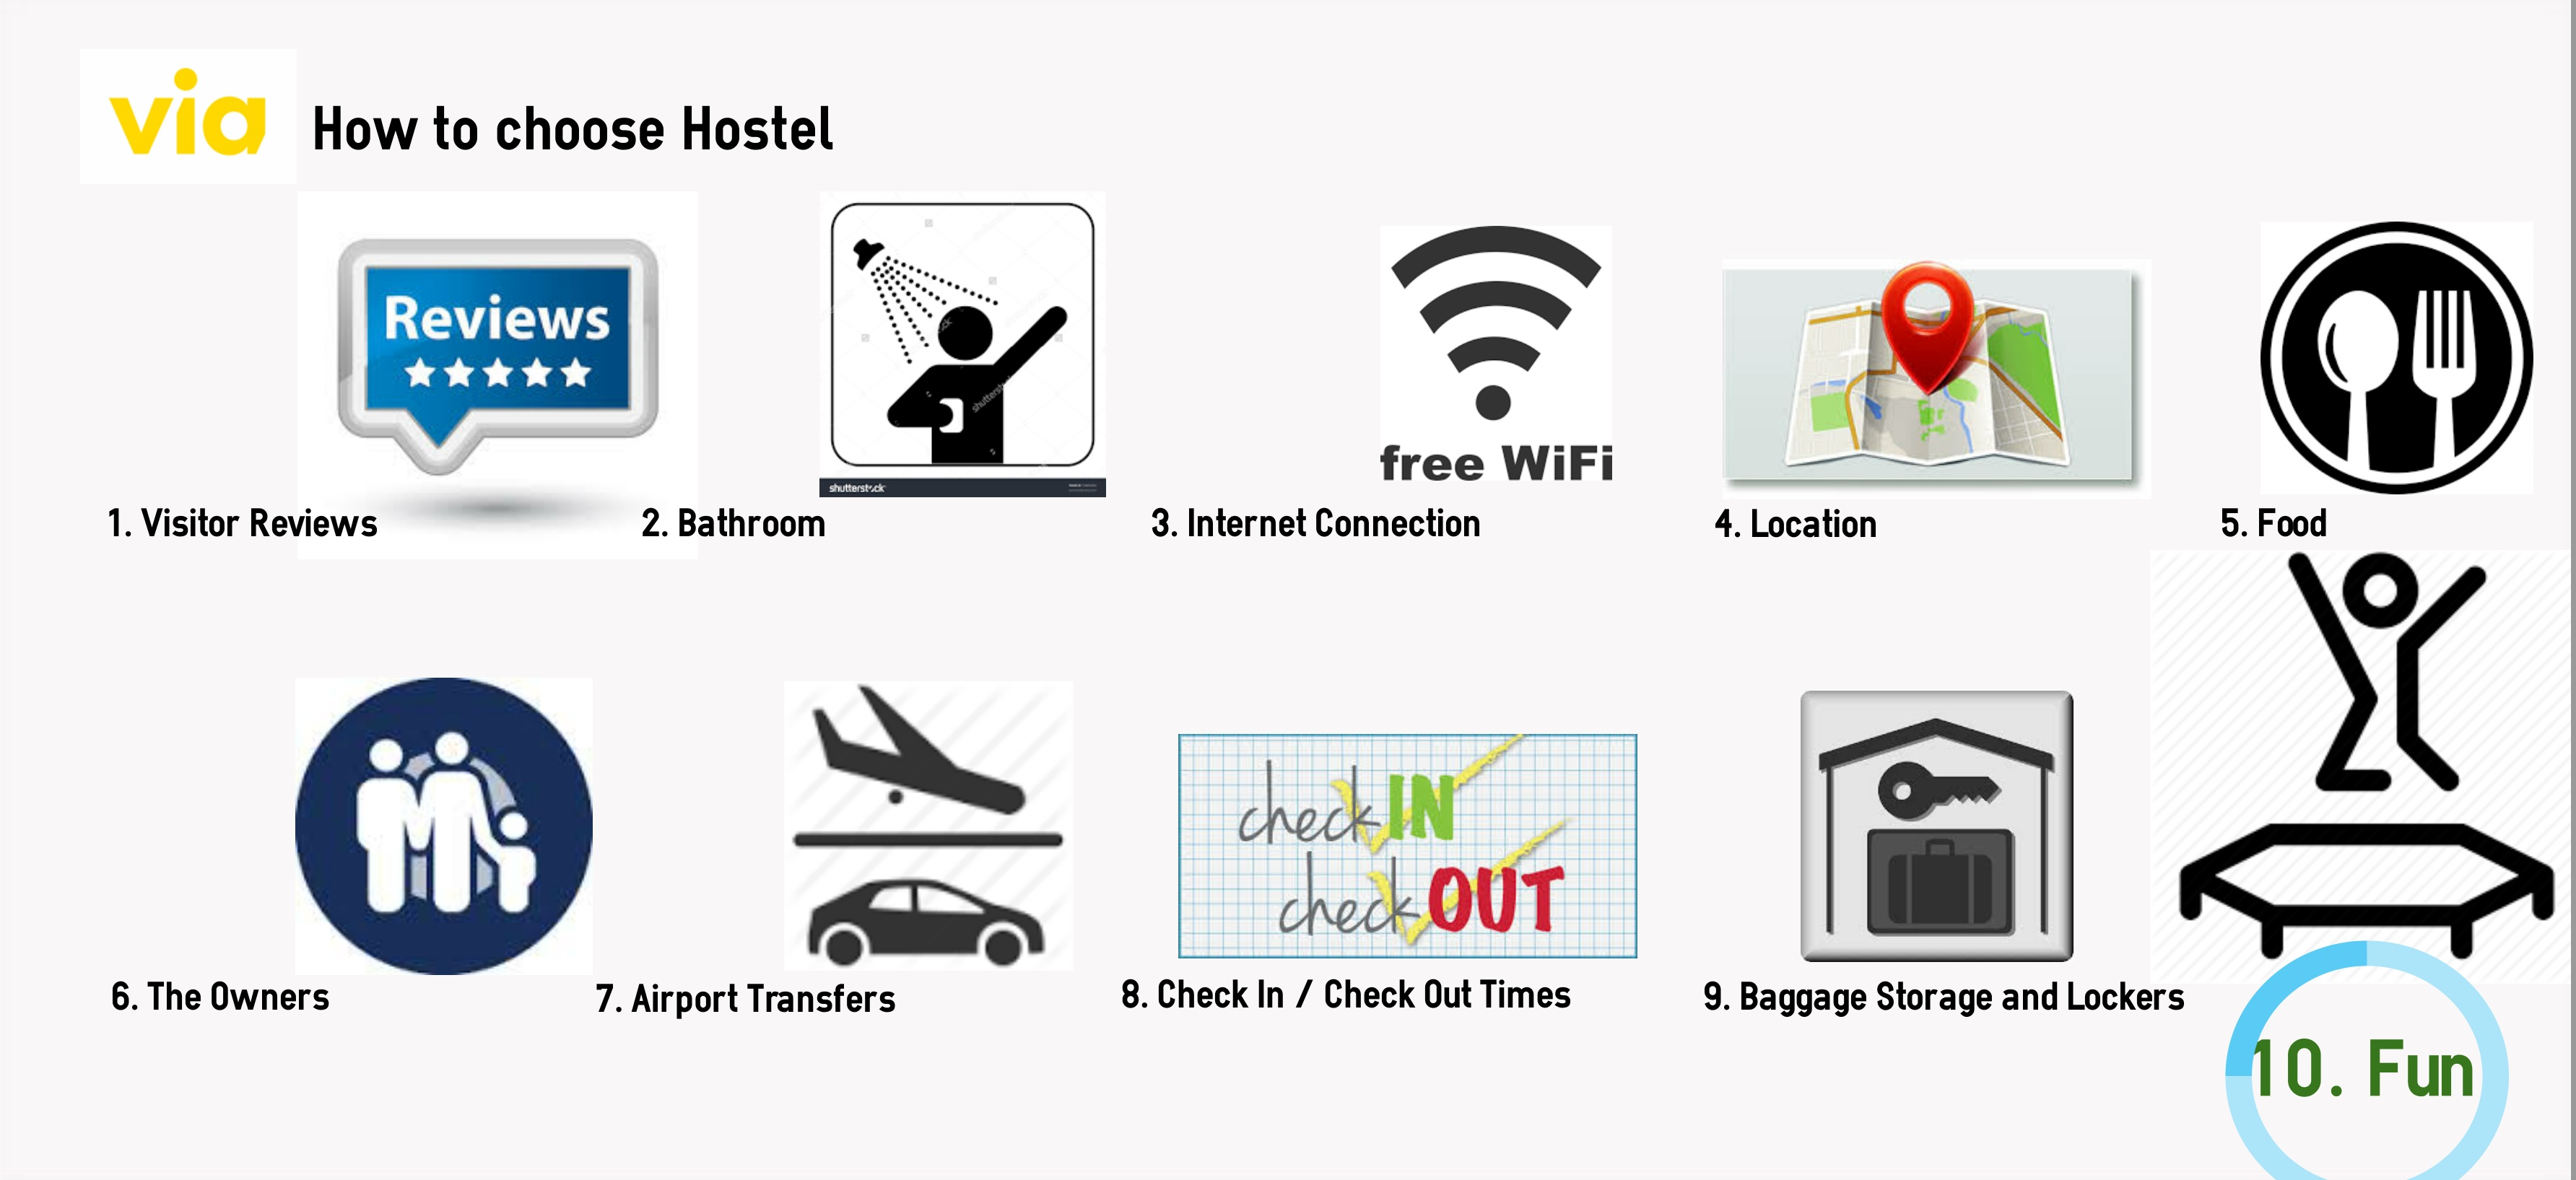 How to choose Hostel